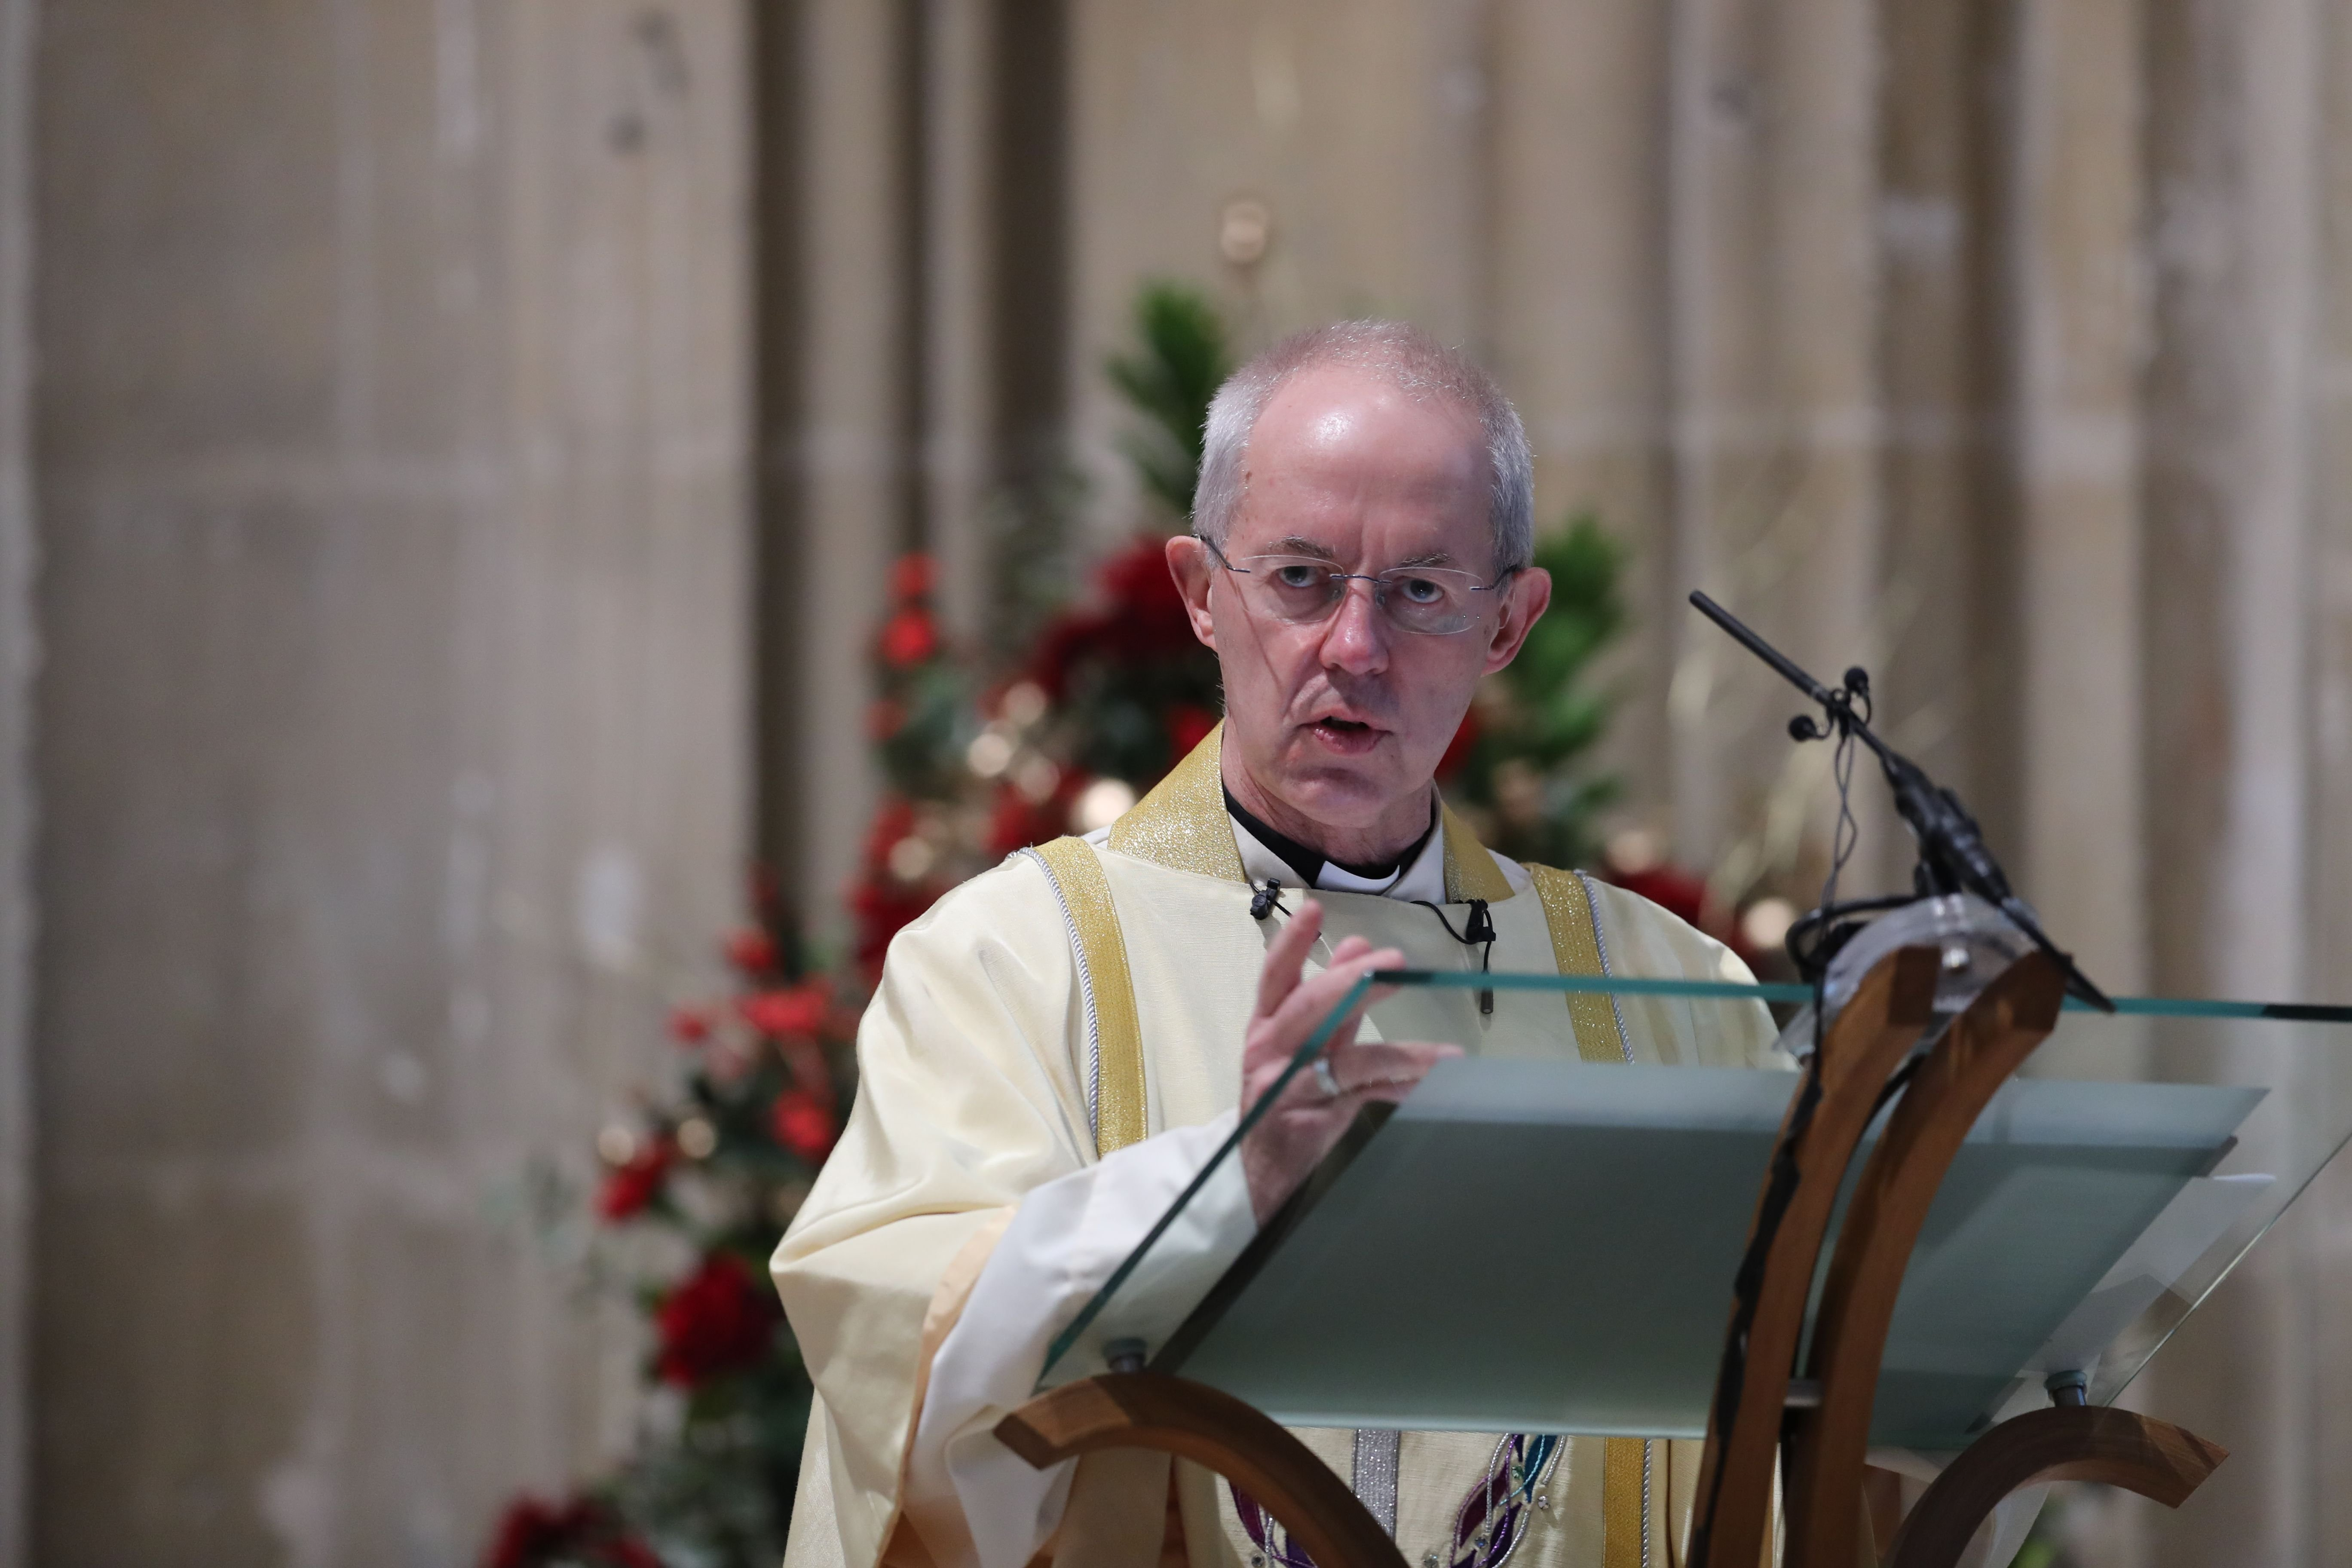 The Archbishop of Canterbury Justin Welby at the Christmas Day service at Canterbury Cathedral in Kent. | Source: Getty Images